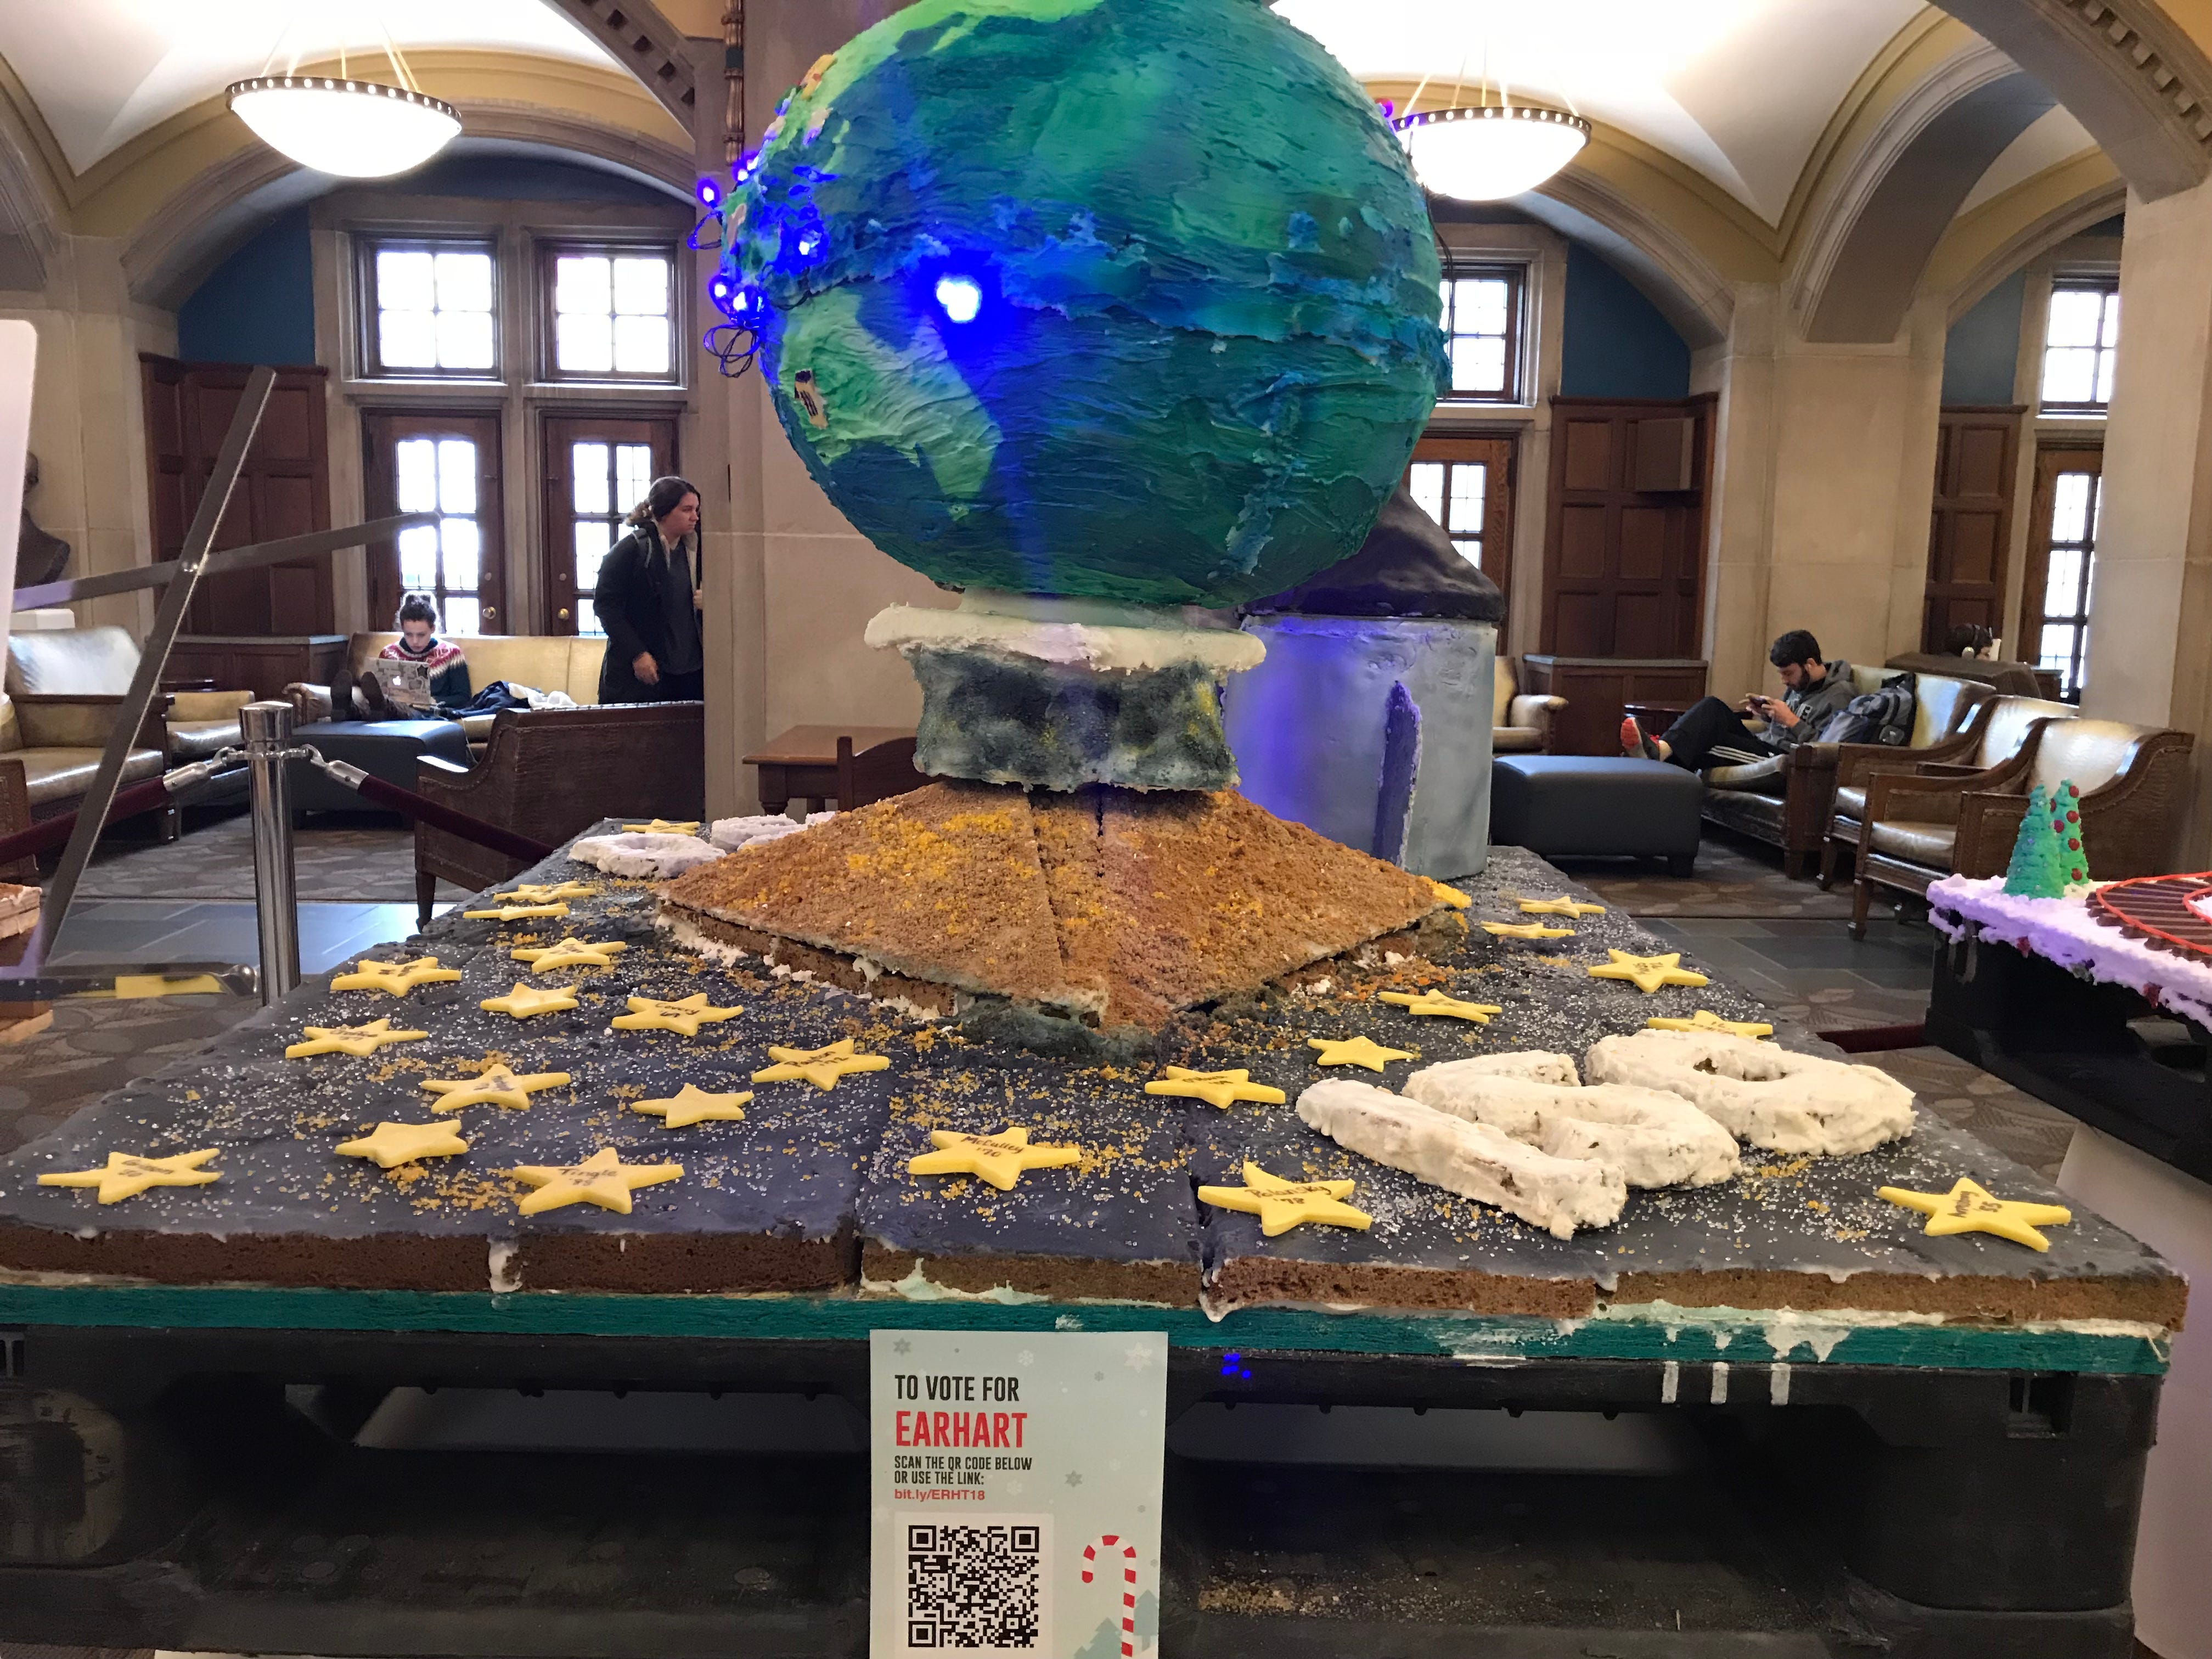 Earhart Dining Court's gingerbread display